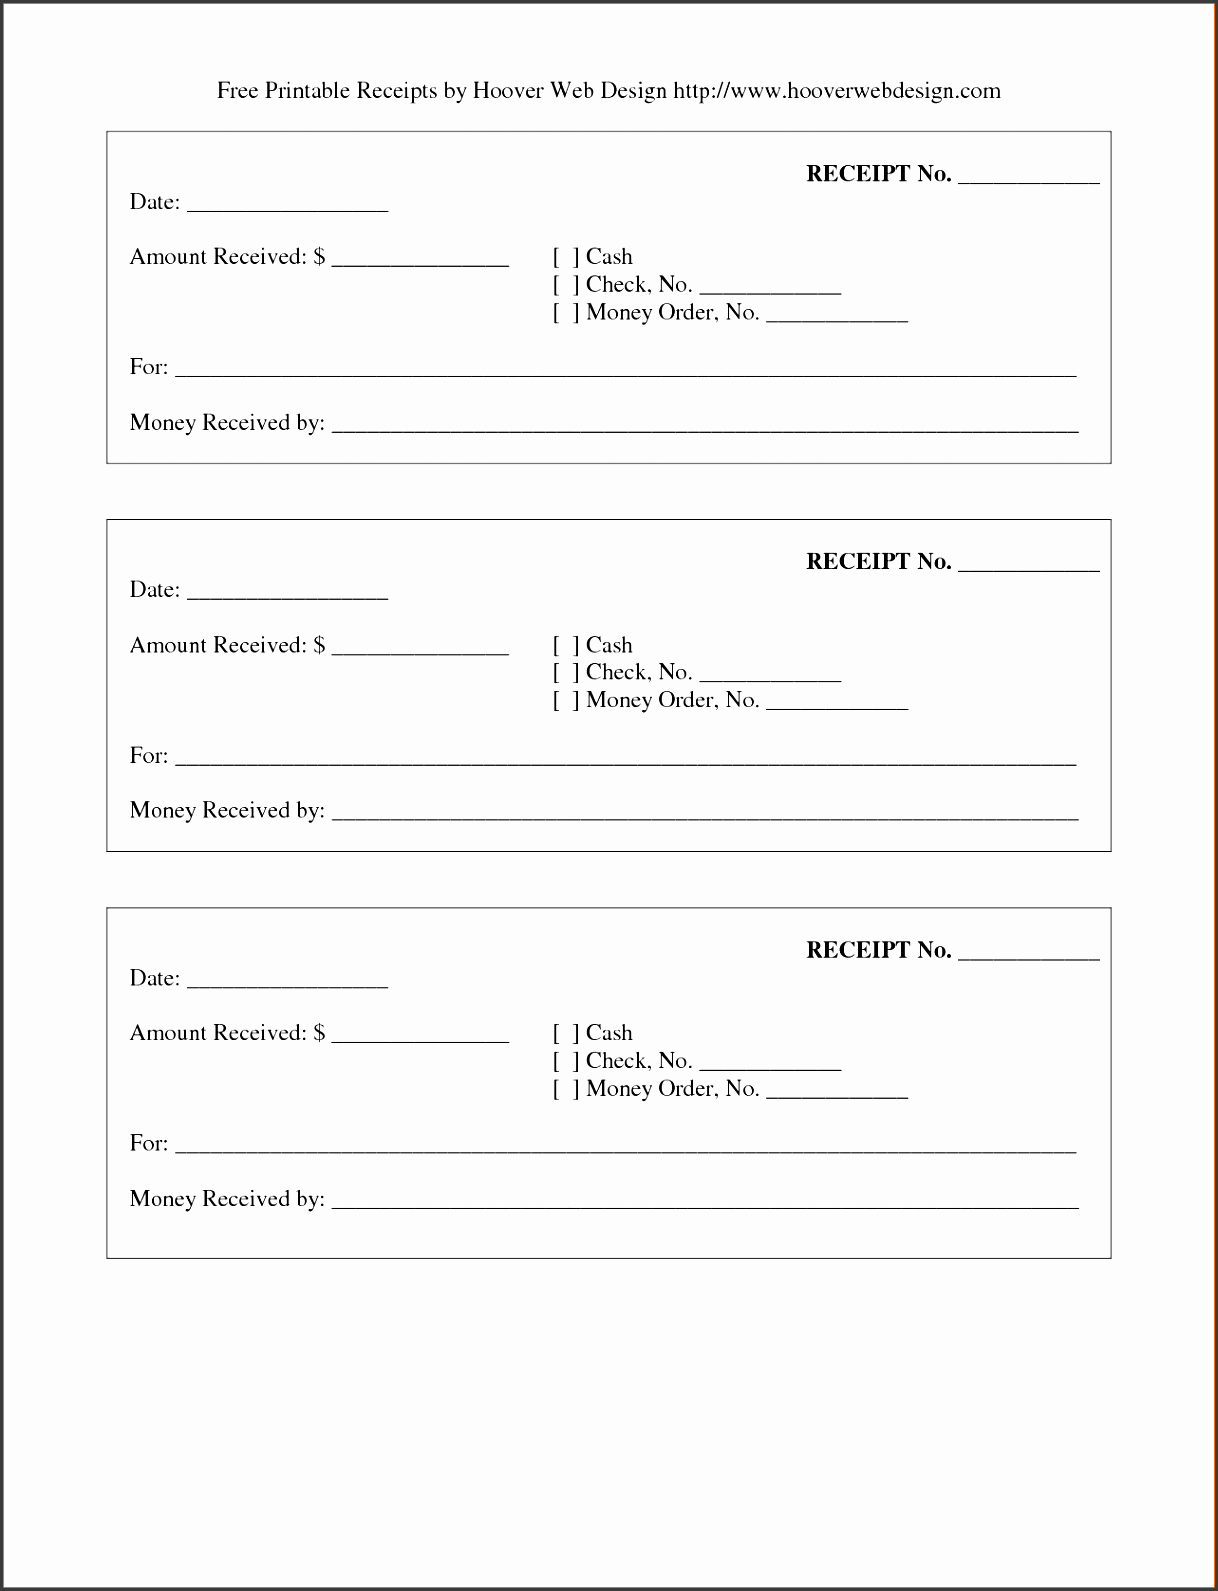 5 Printable Payment Receipt Template Sampletemplatess